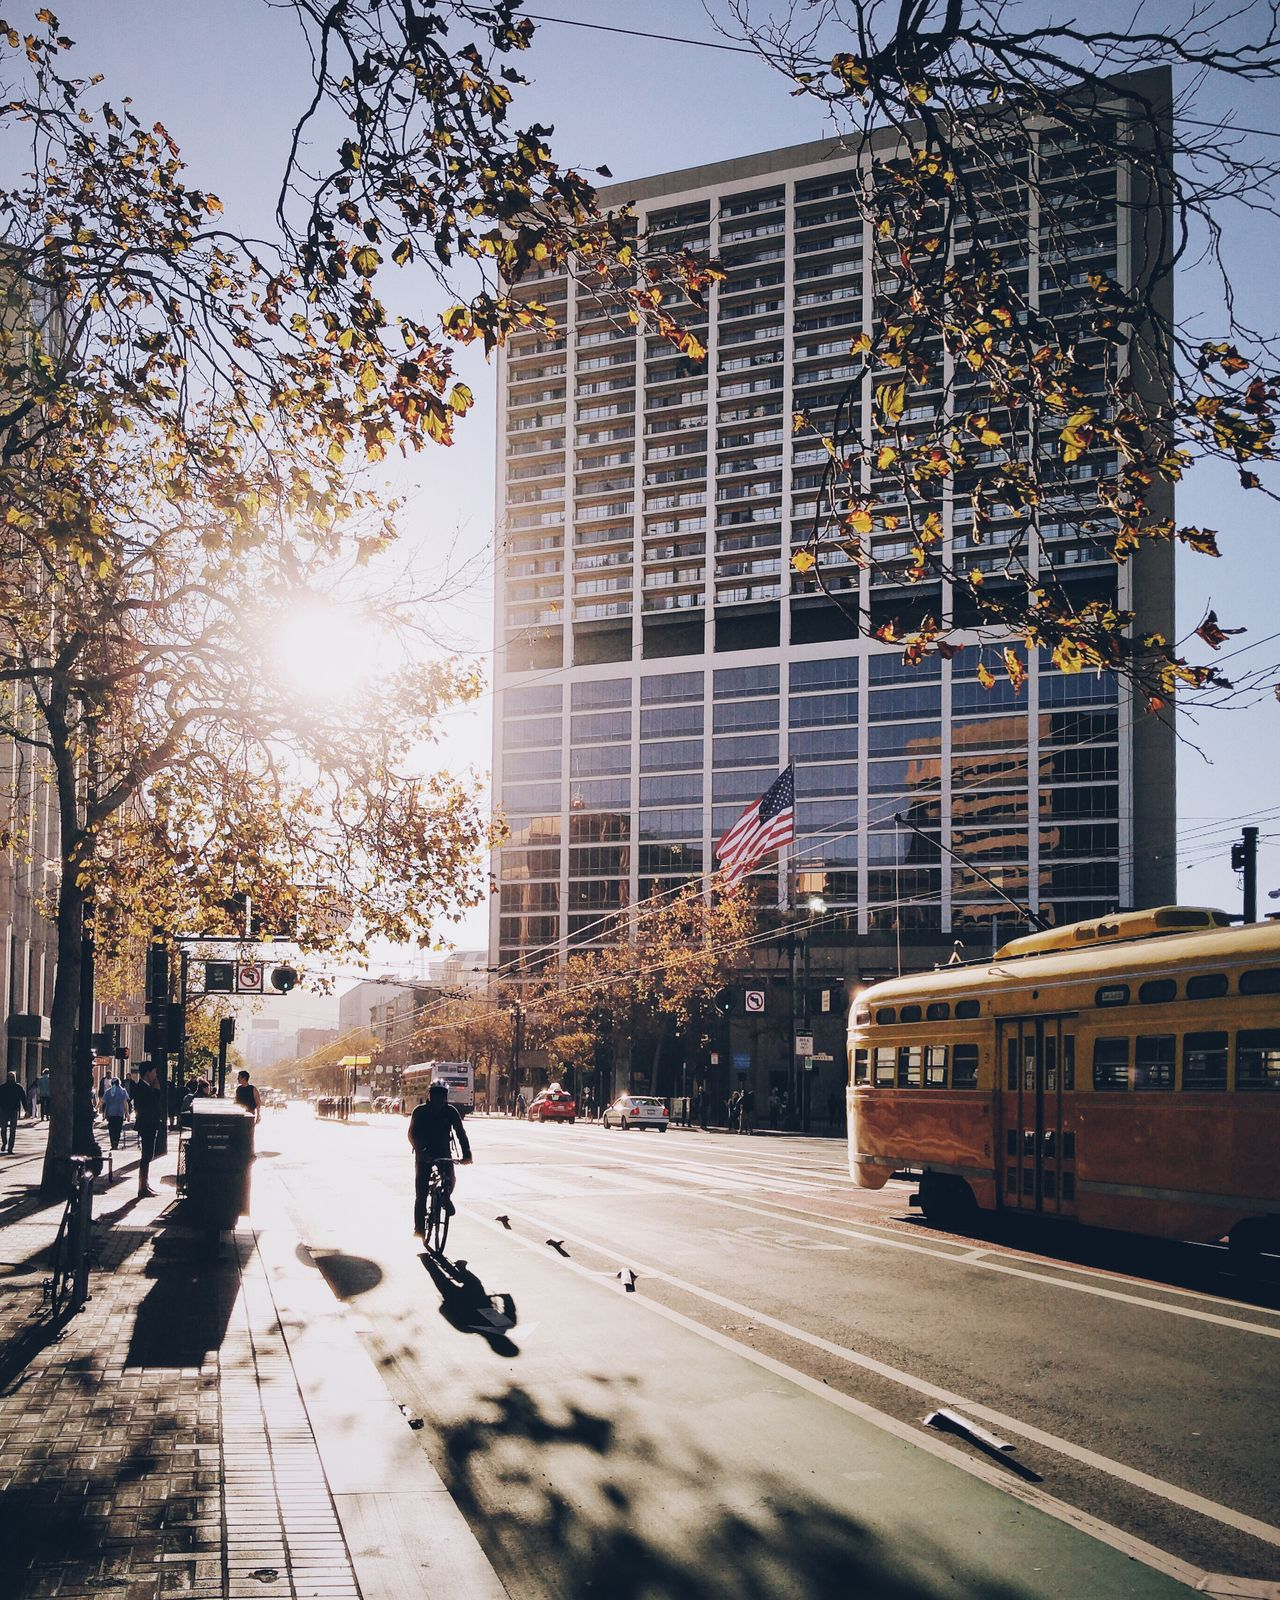 Architecture Sunlight Built Structure Walking Transportation Day People Outdoors Building Exterior Men City Tree Real People Sky Adult Adults Only Only Men